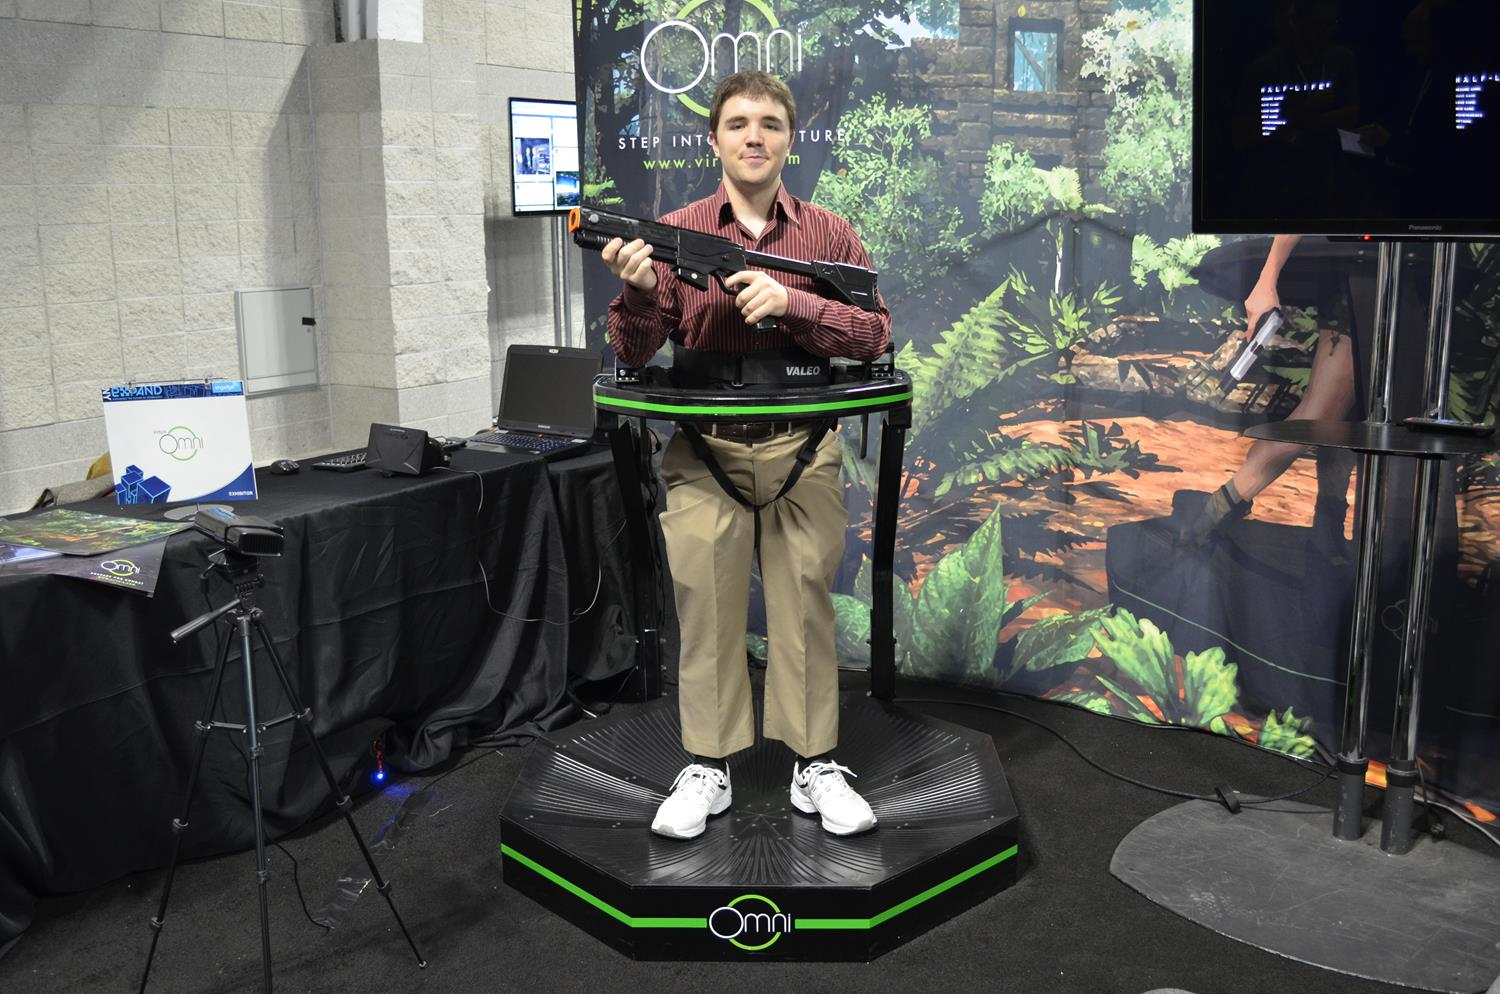 Virtuix omni vr treadmill hands on interview with ceo video for Virtual reality fishing